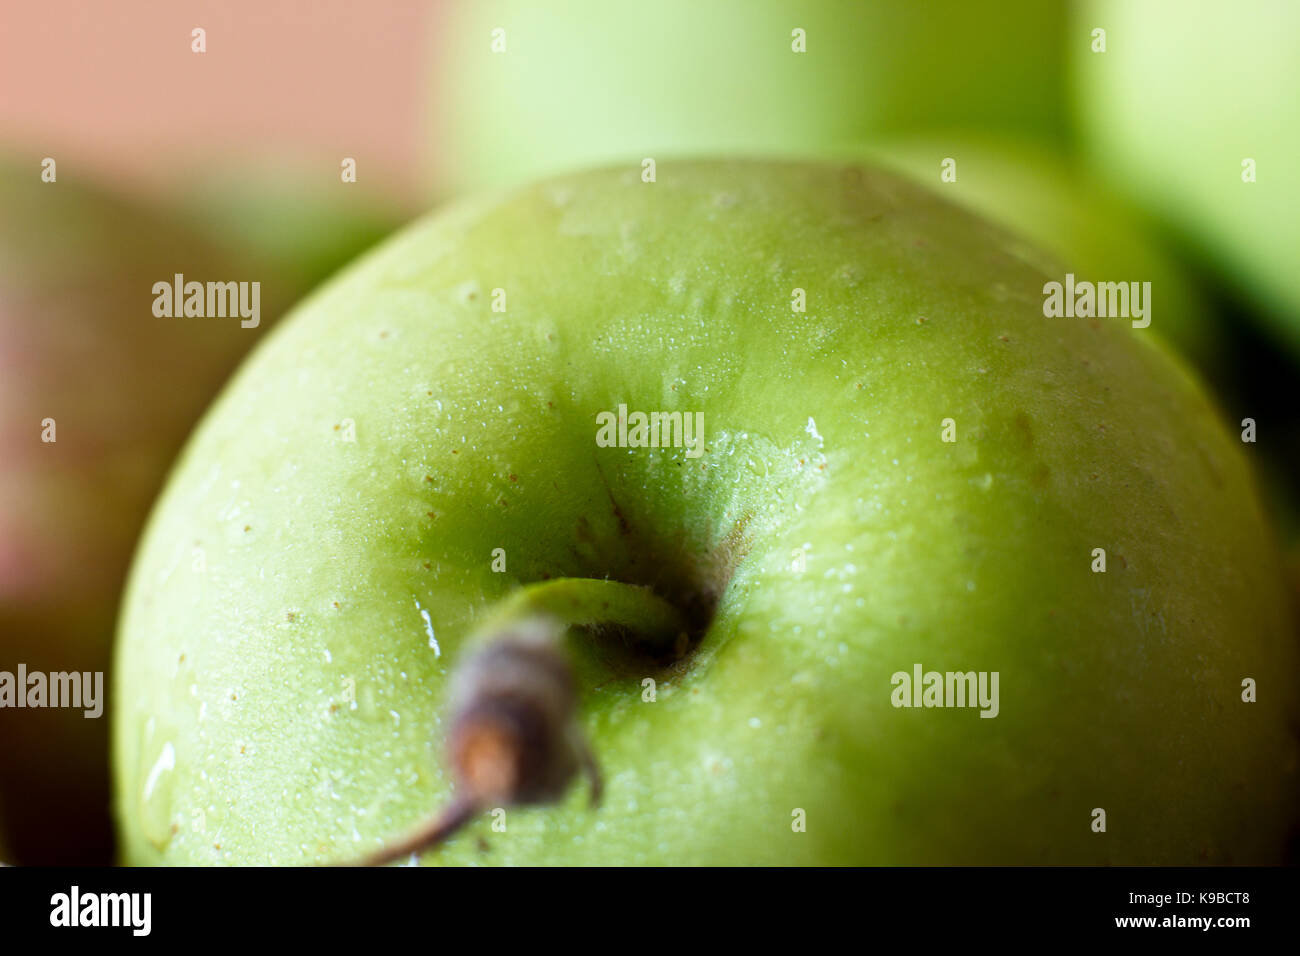 A green apple in the drops of water. Macro shooting. Selective focus. - Stock Image